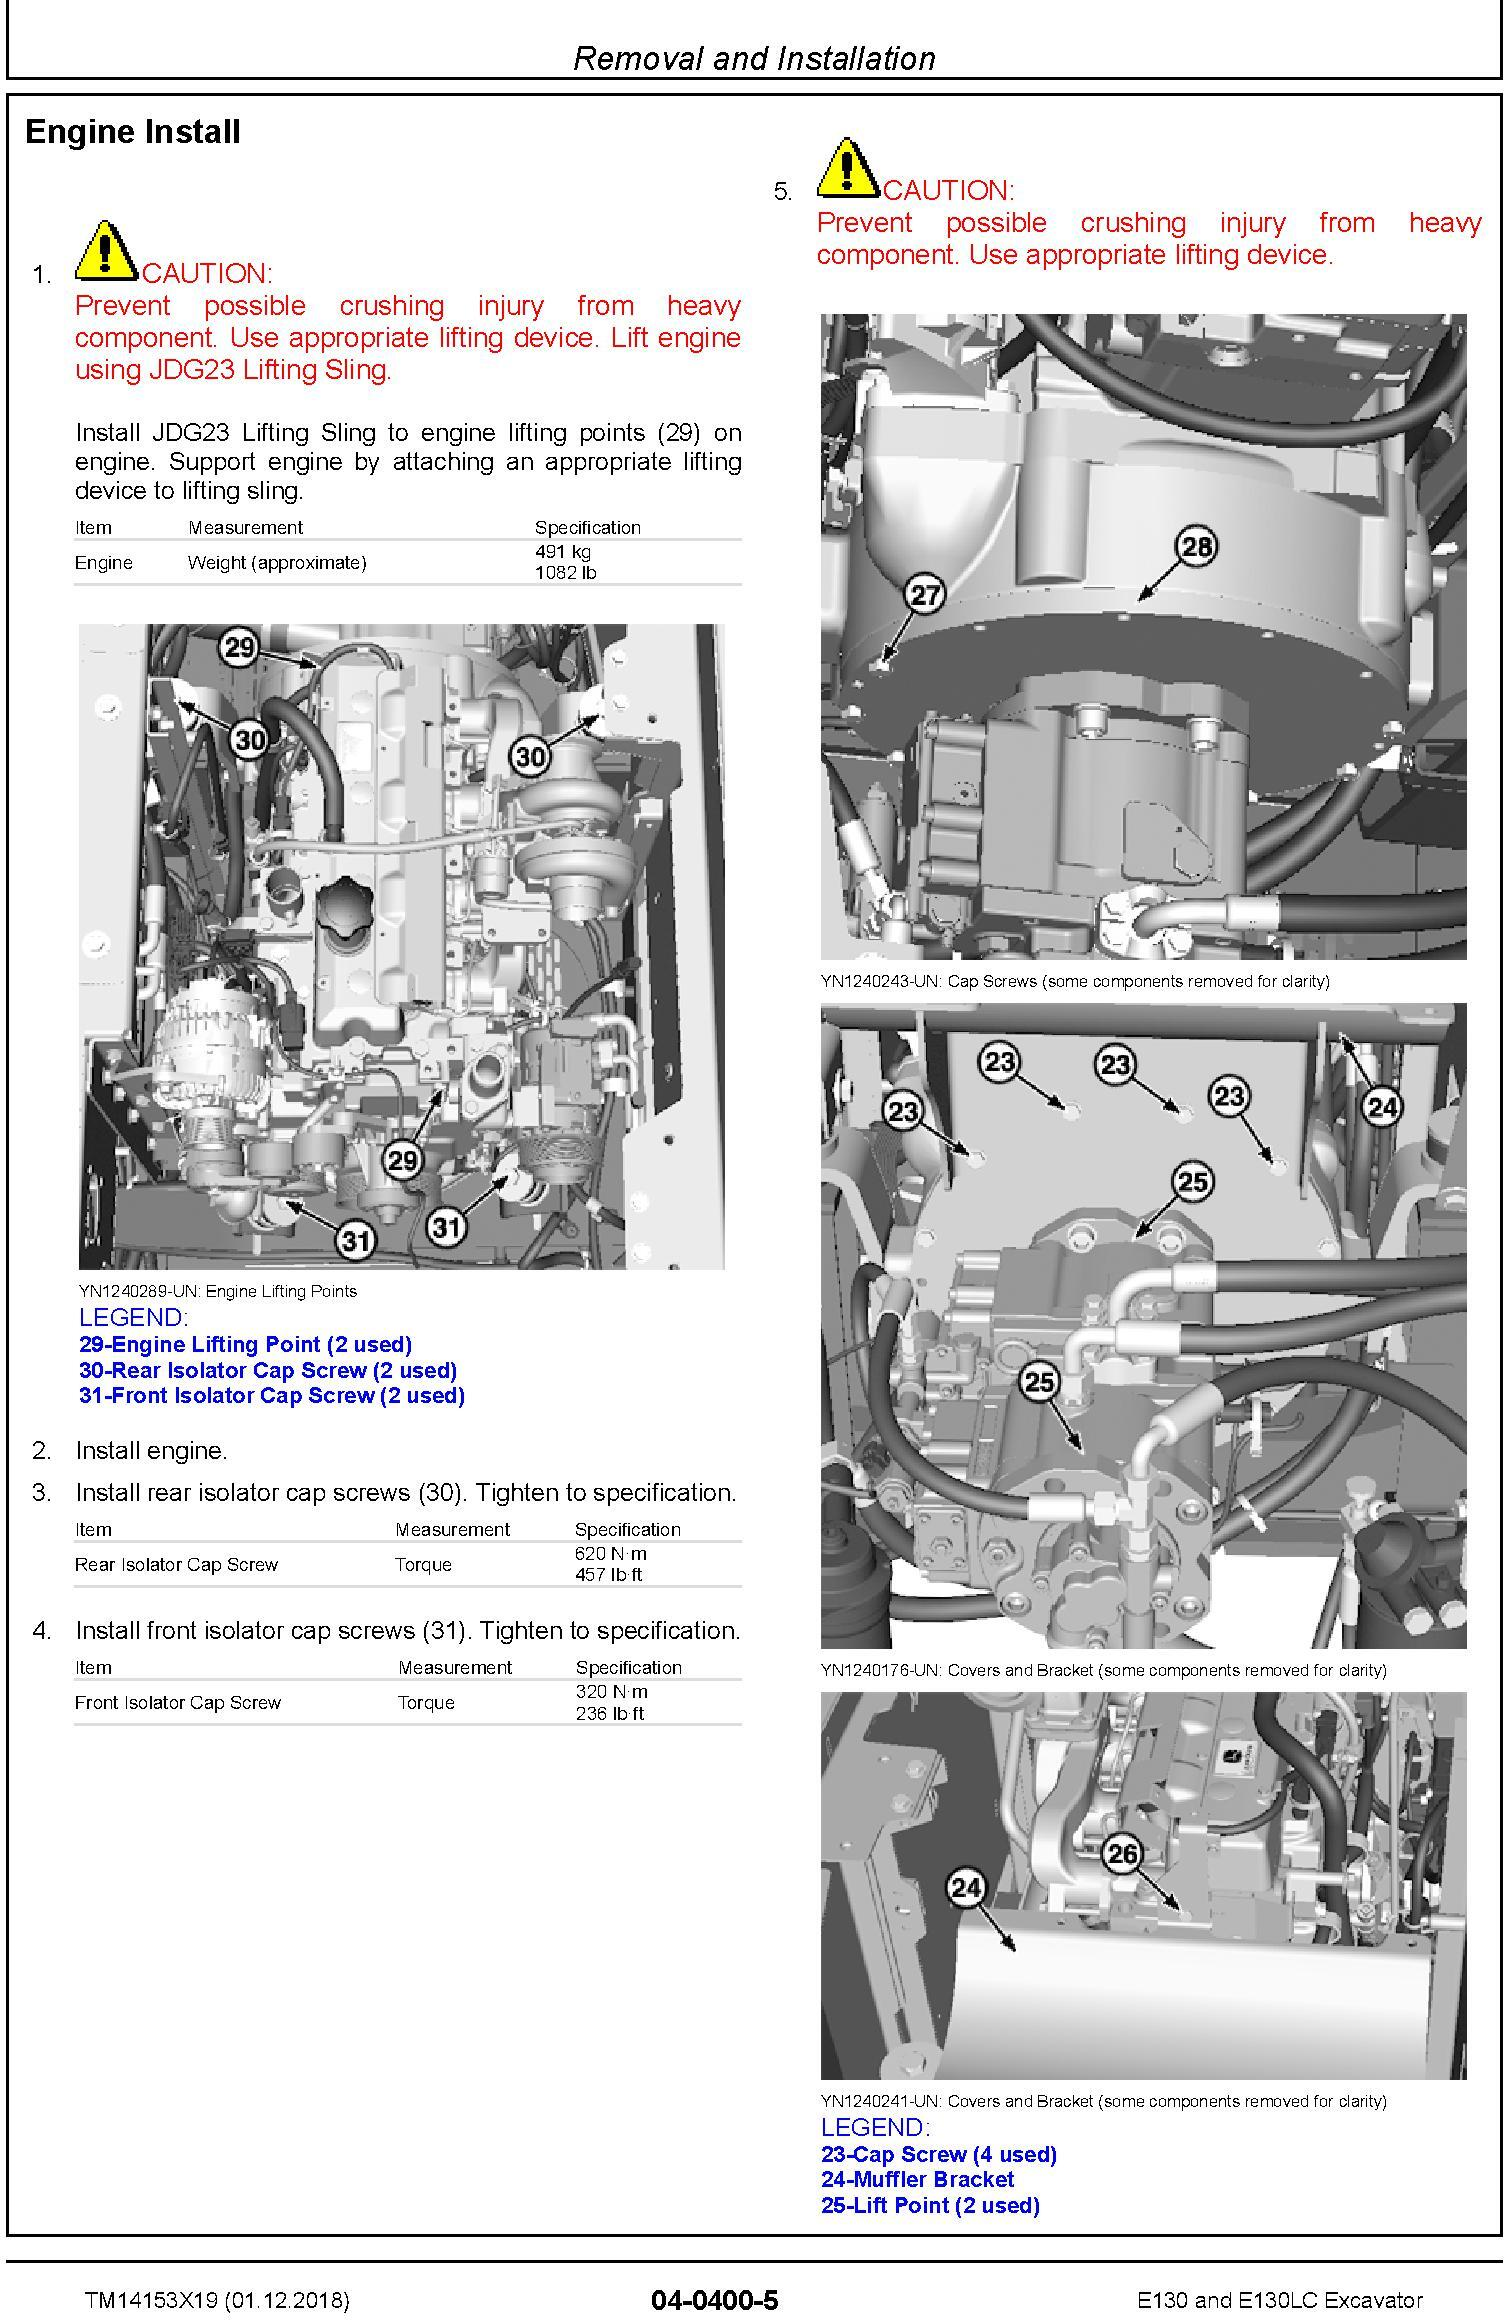 John Deere E130, E130LC (SN.from D300003) Excavator Repair Technical Manual (TM14153X19) - 3